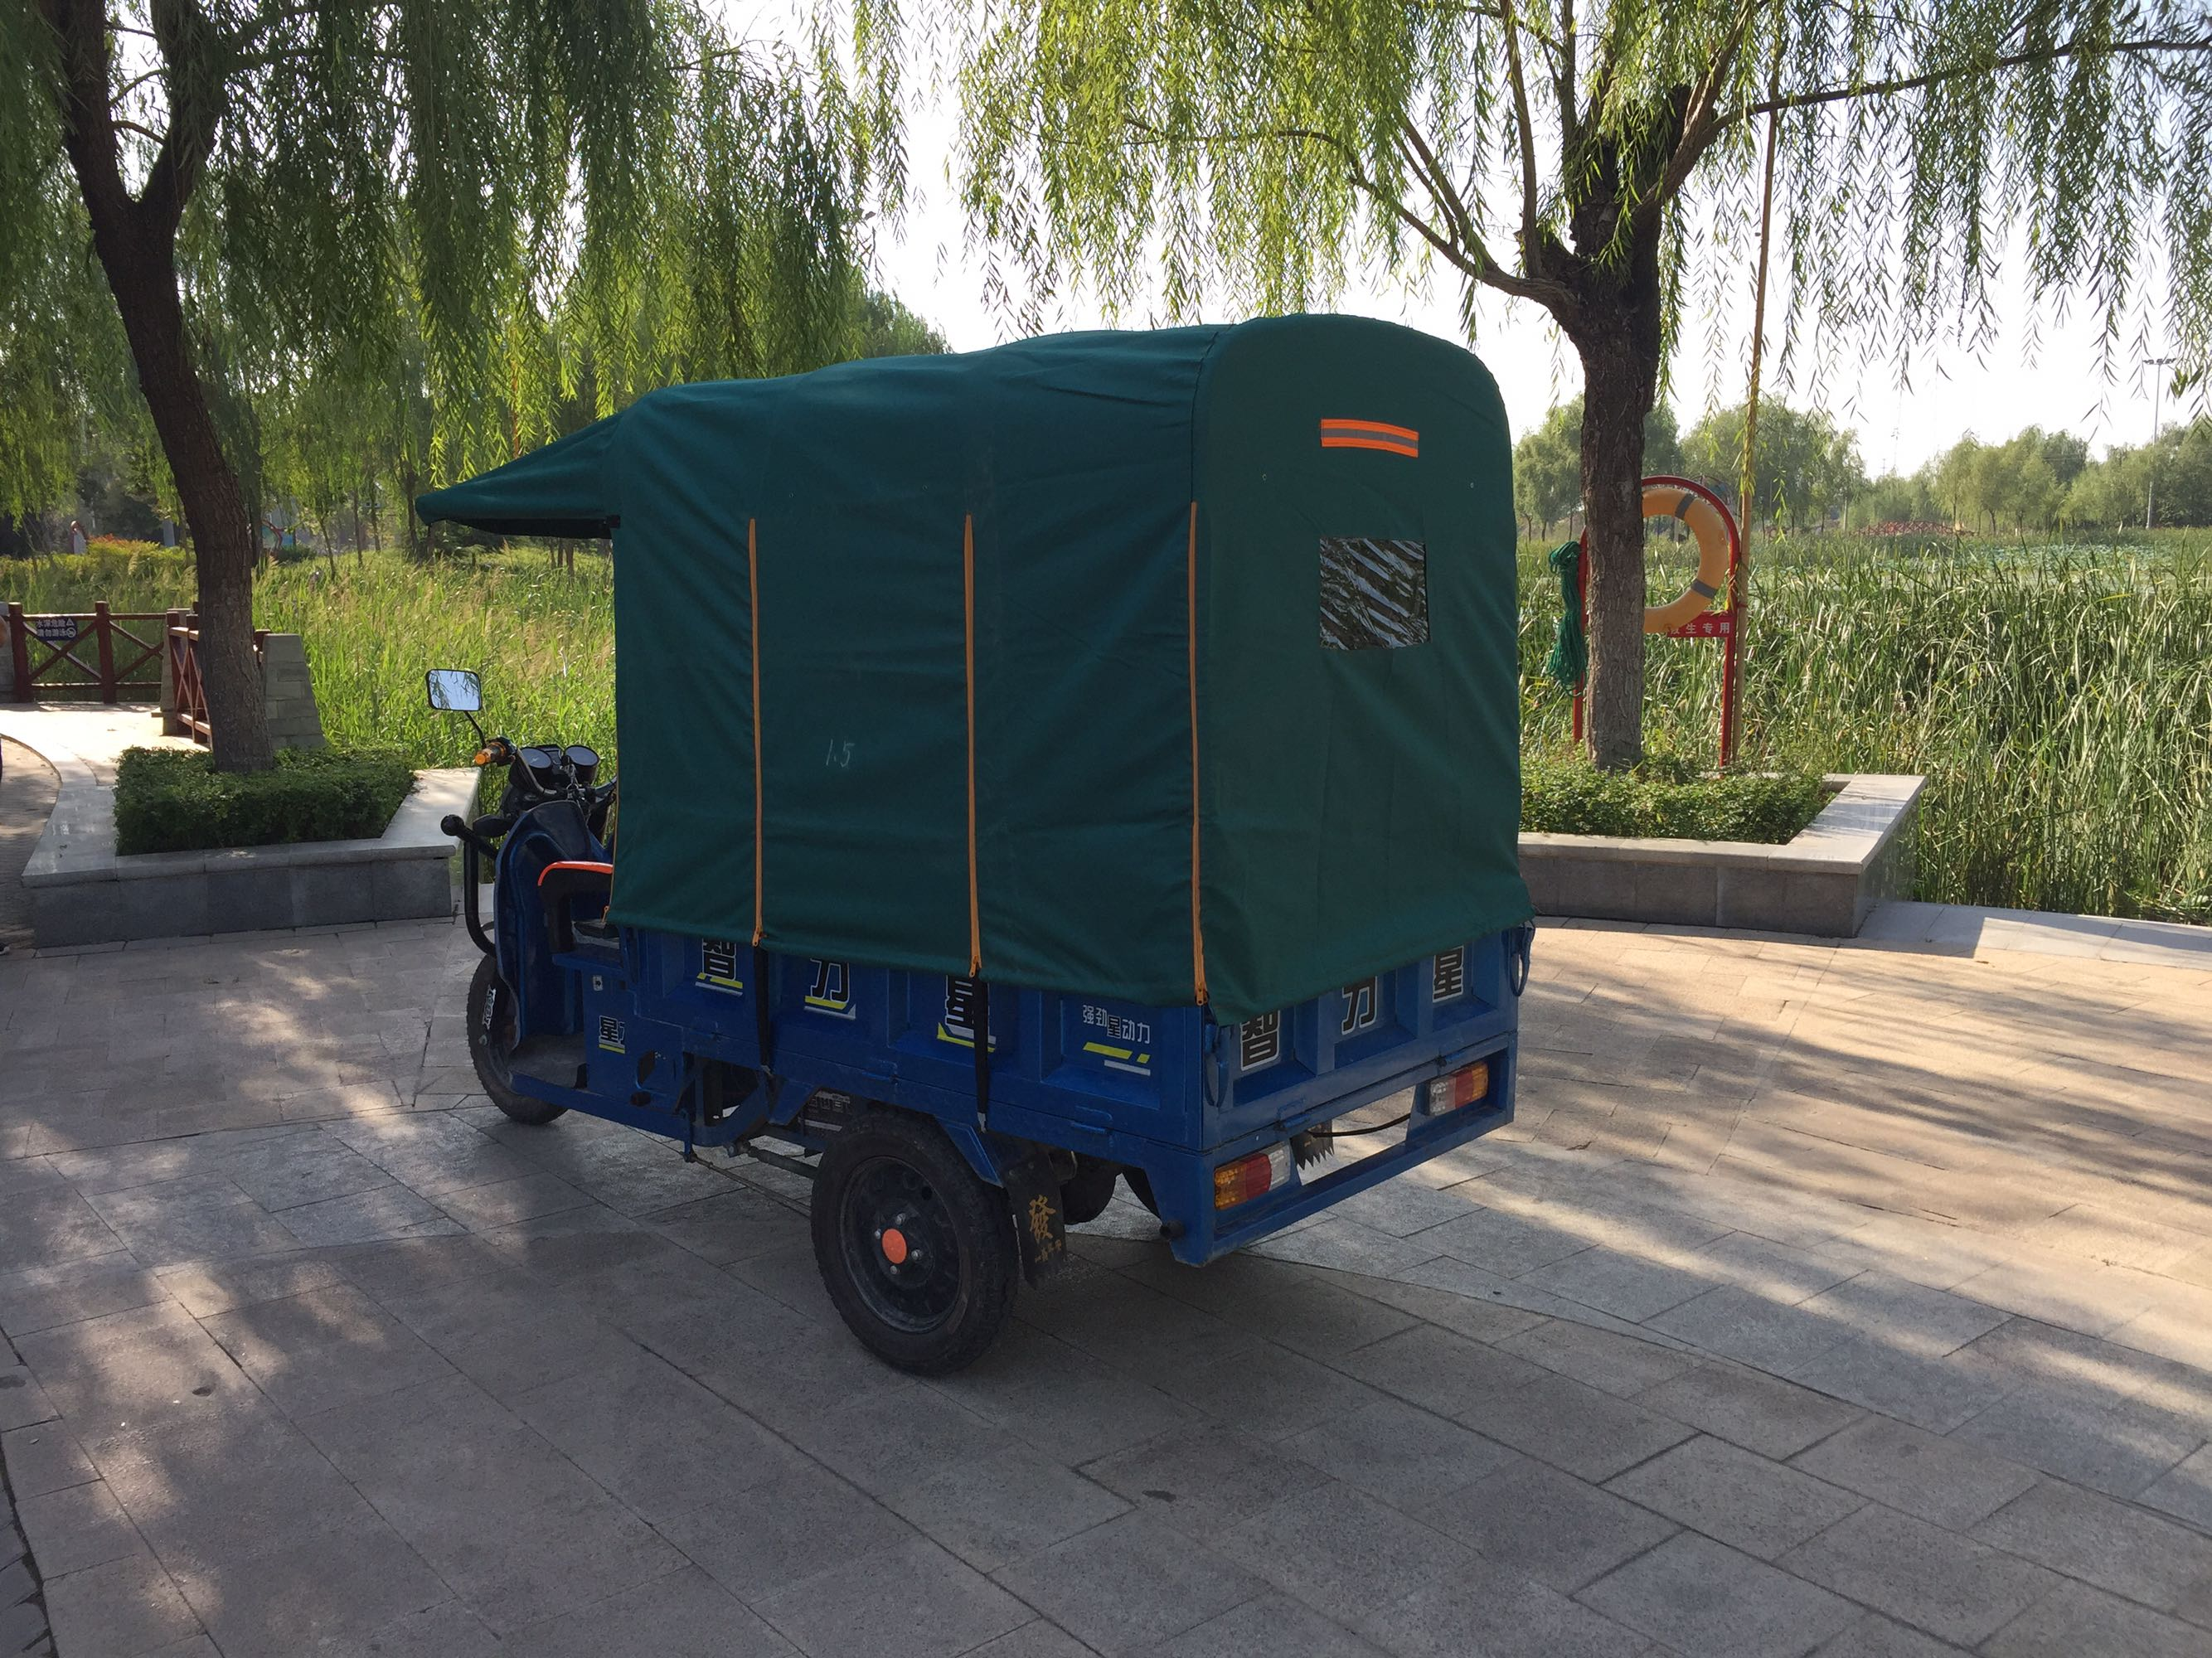 35 65 Fully Enclosed Electric Tricycle Carport Canopy Awning Autumn And Winter Summer Thickening Awning Rainproof Wind Folding Hood From Best Taobao Agent Taobao International International Ecommerce Newbecca Com